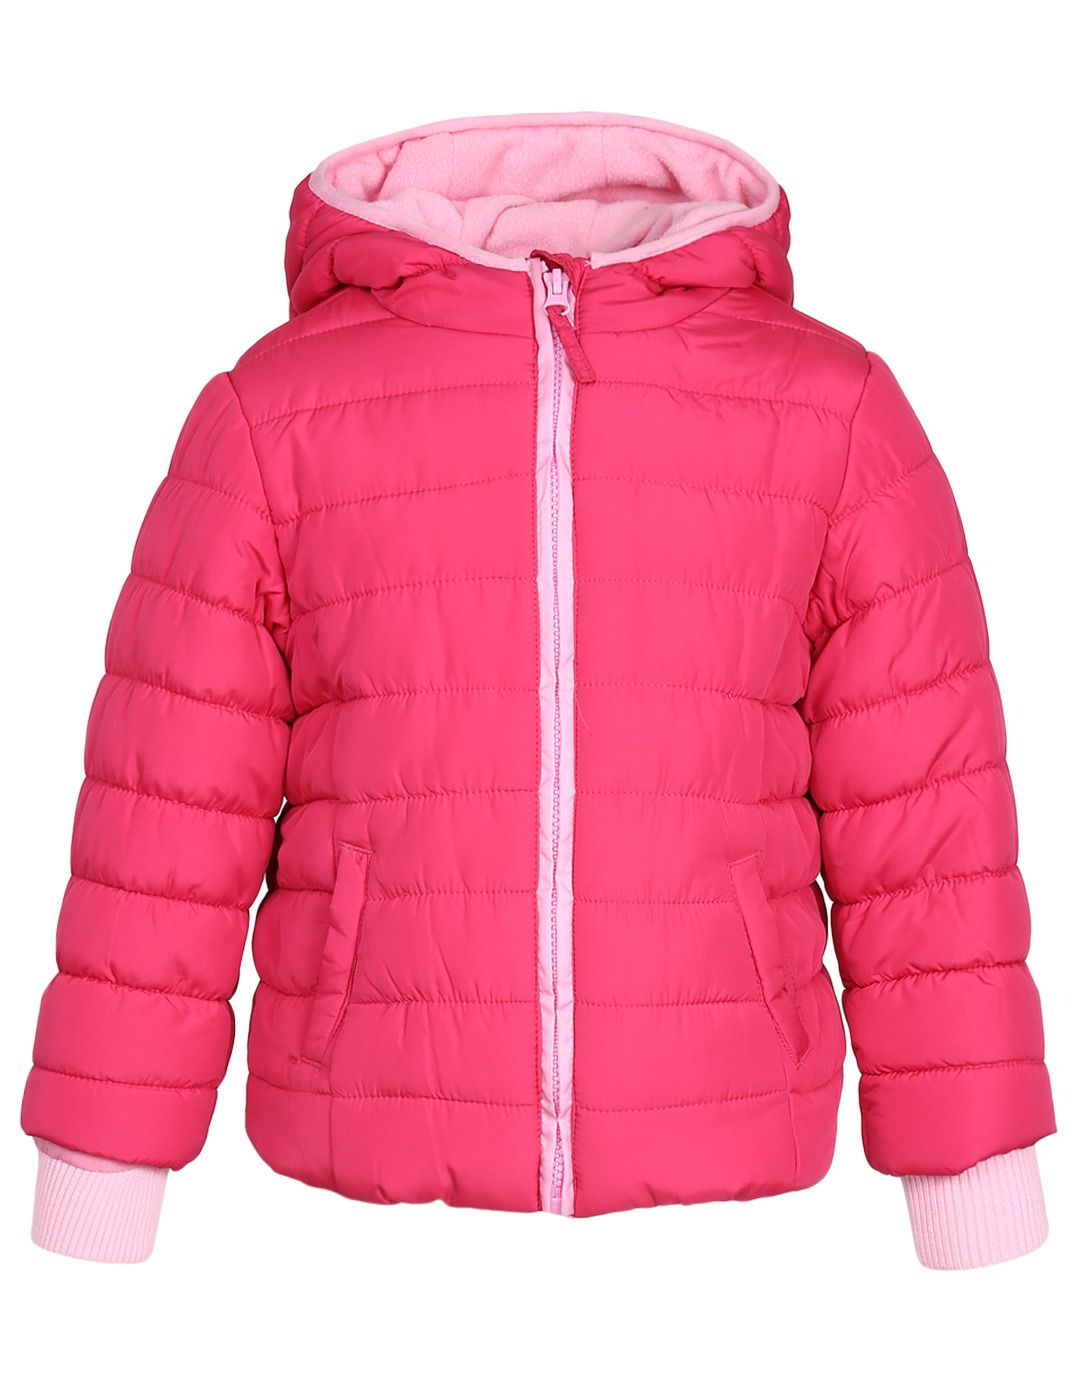 Mothercare Girls Pink Jacket